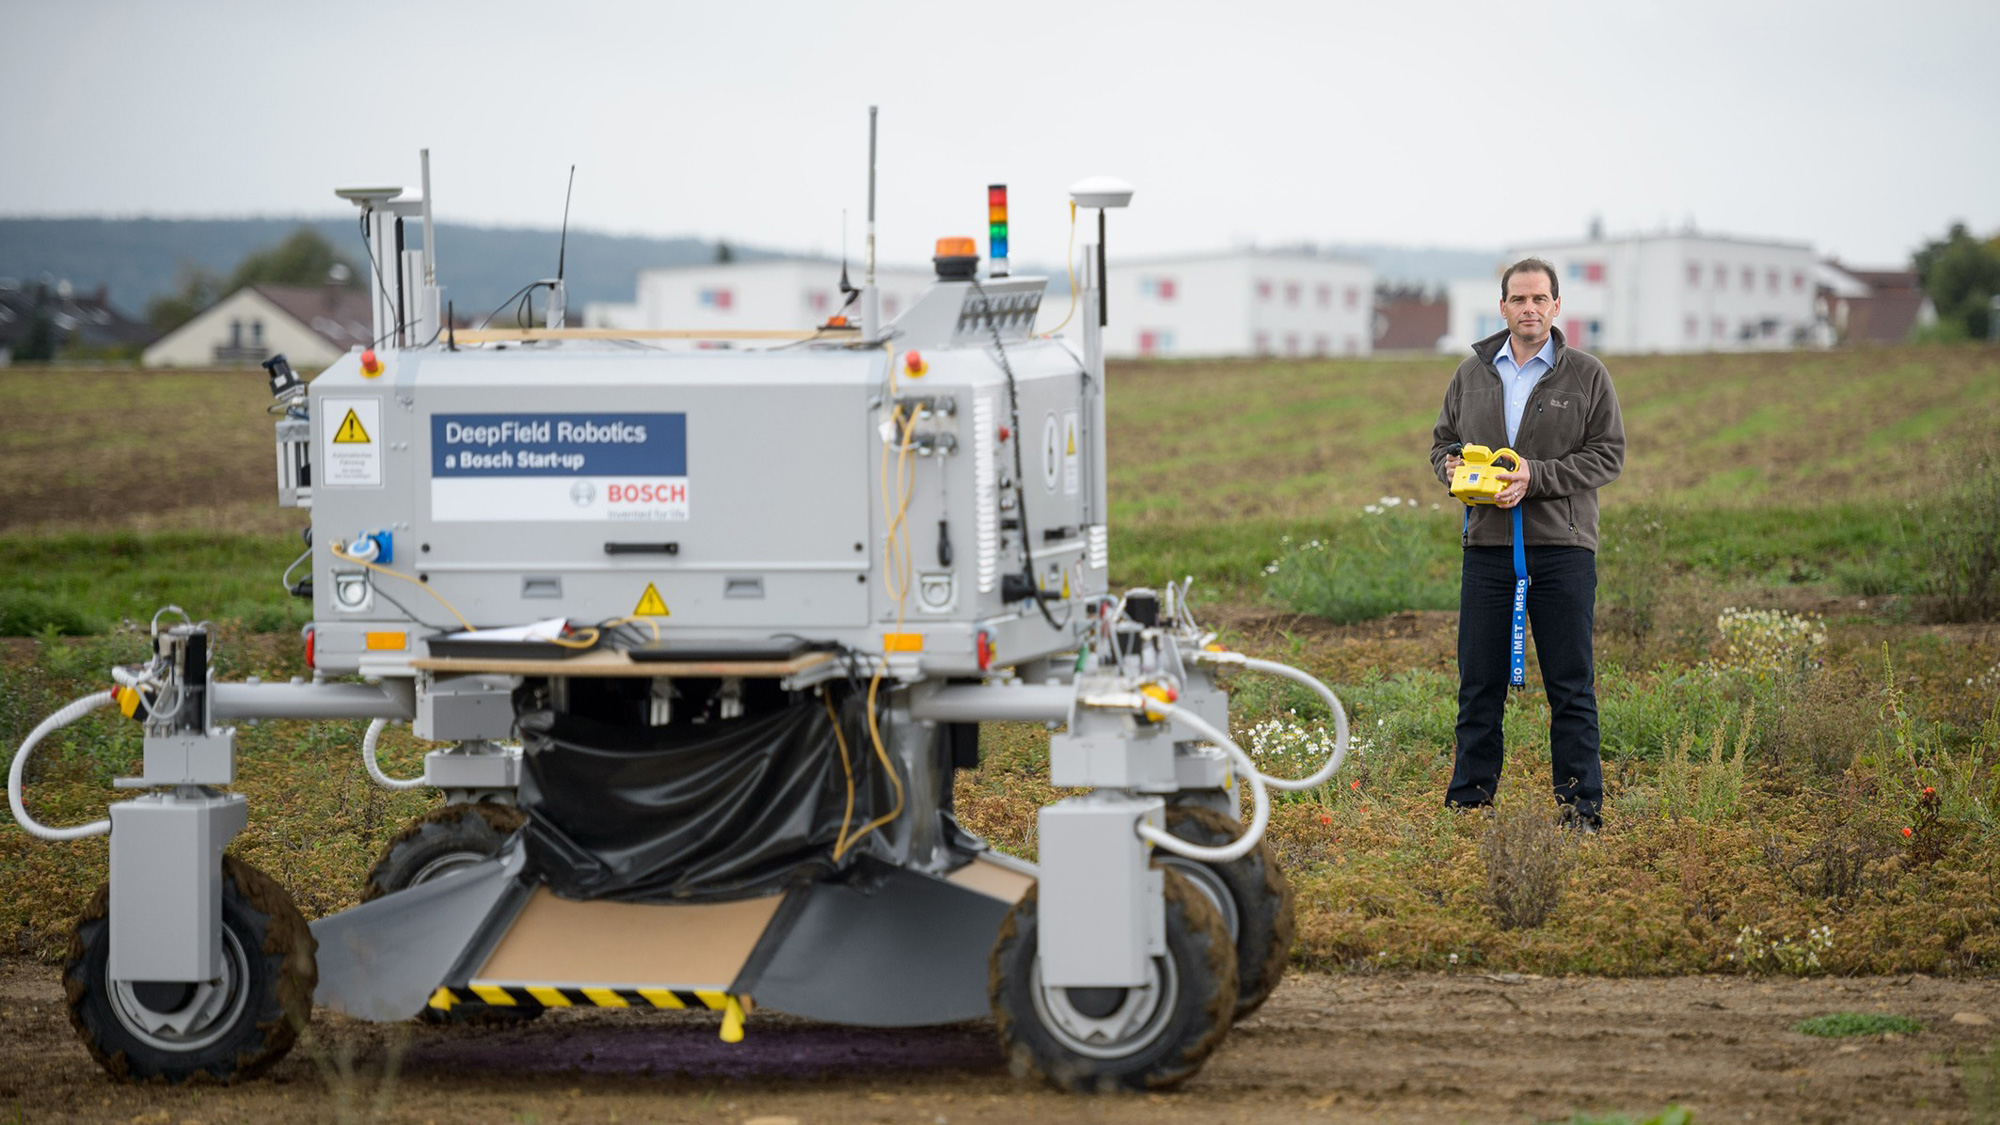 This robot kills weeds, and could end the need for herbicides on